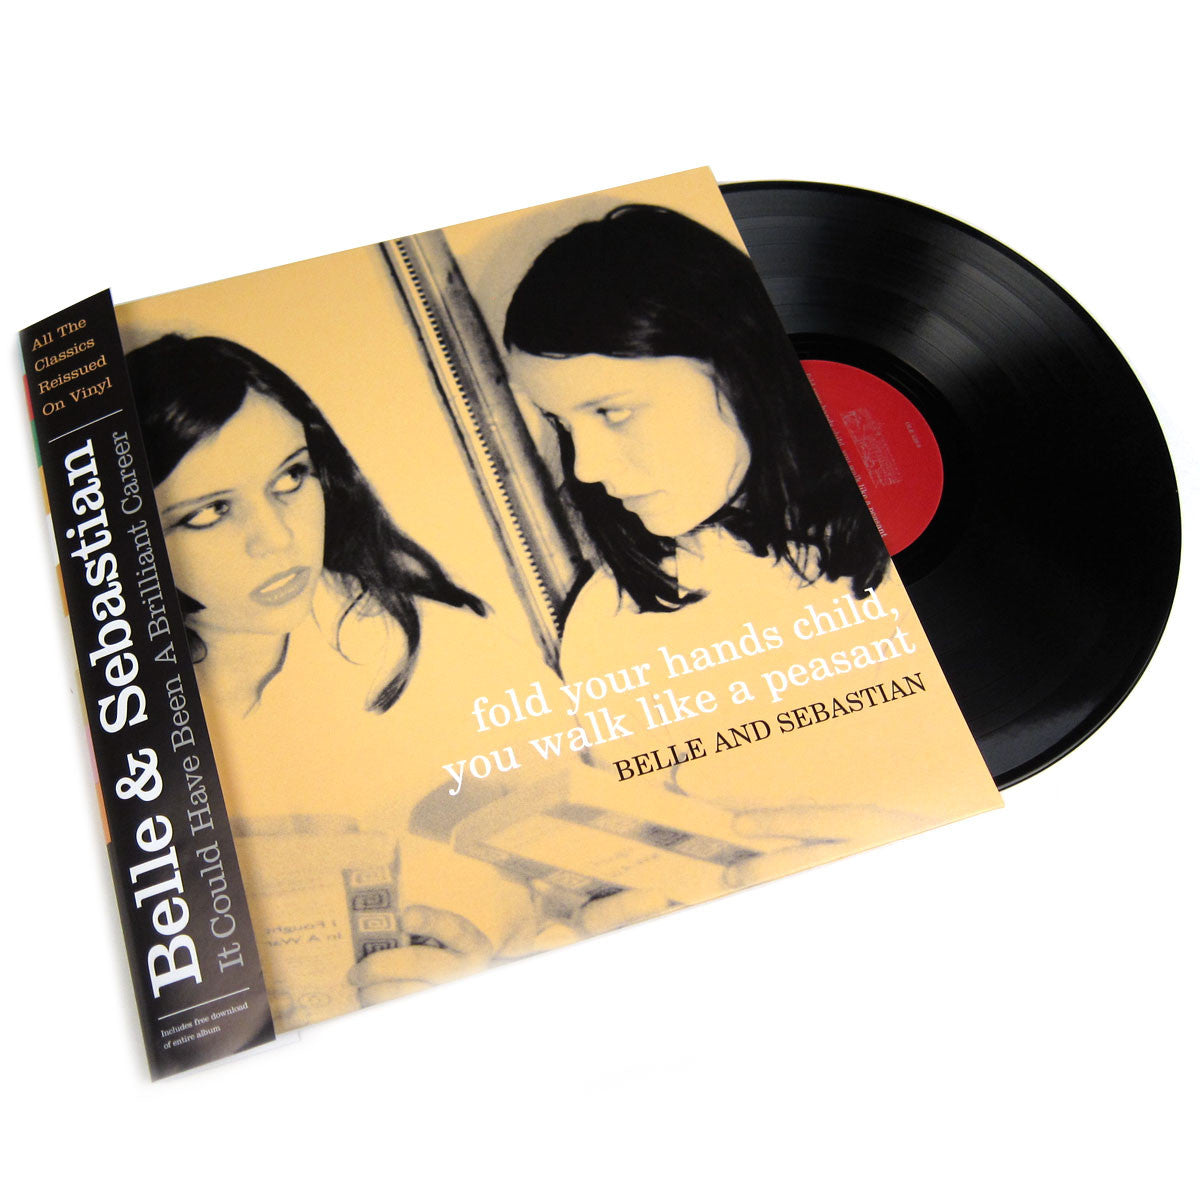 Belle & Sebastian: Fold Your Hands Child You Walk Like A Peasant (Free MP3) Vinyl LP